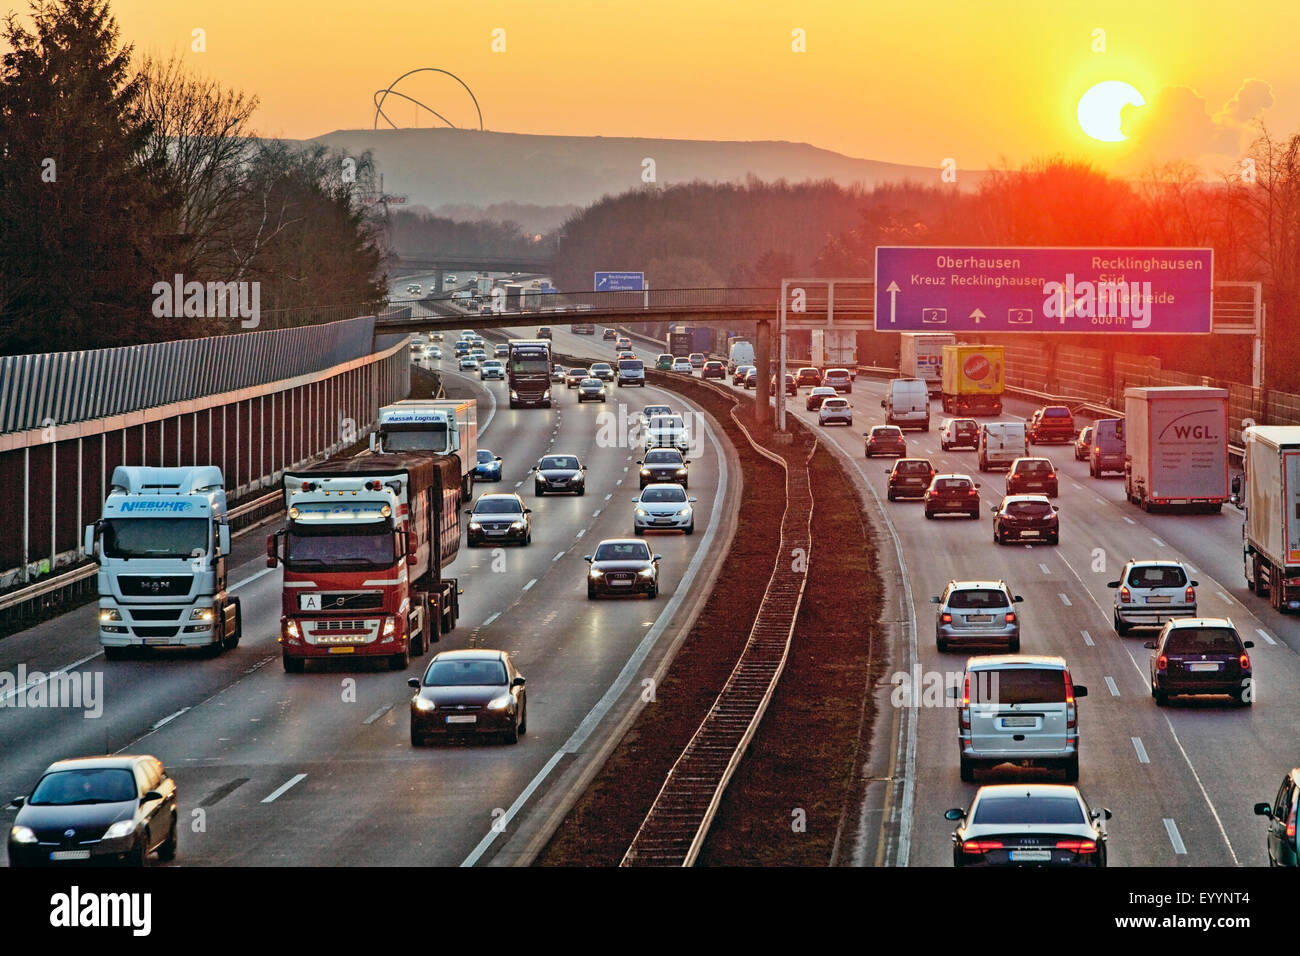 motorway A2 and Hoheward Tip in evening light, Germany, North Rhine-Westphalia, Ruhr Area, Recklinghausen Stock Photo